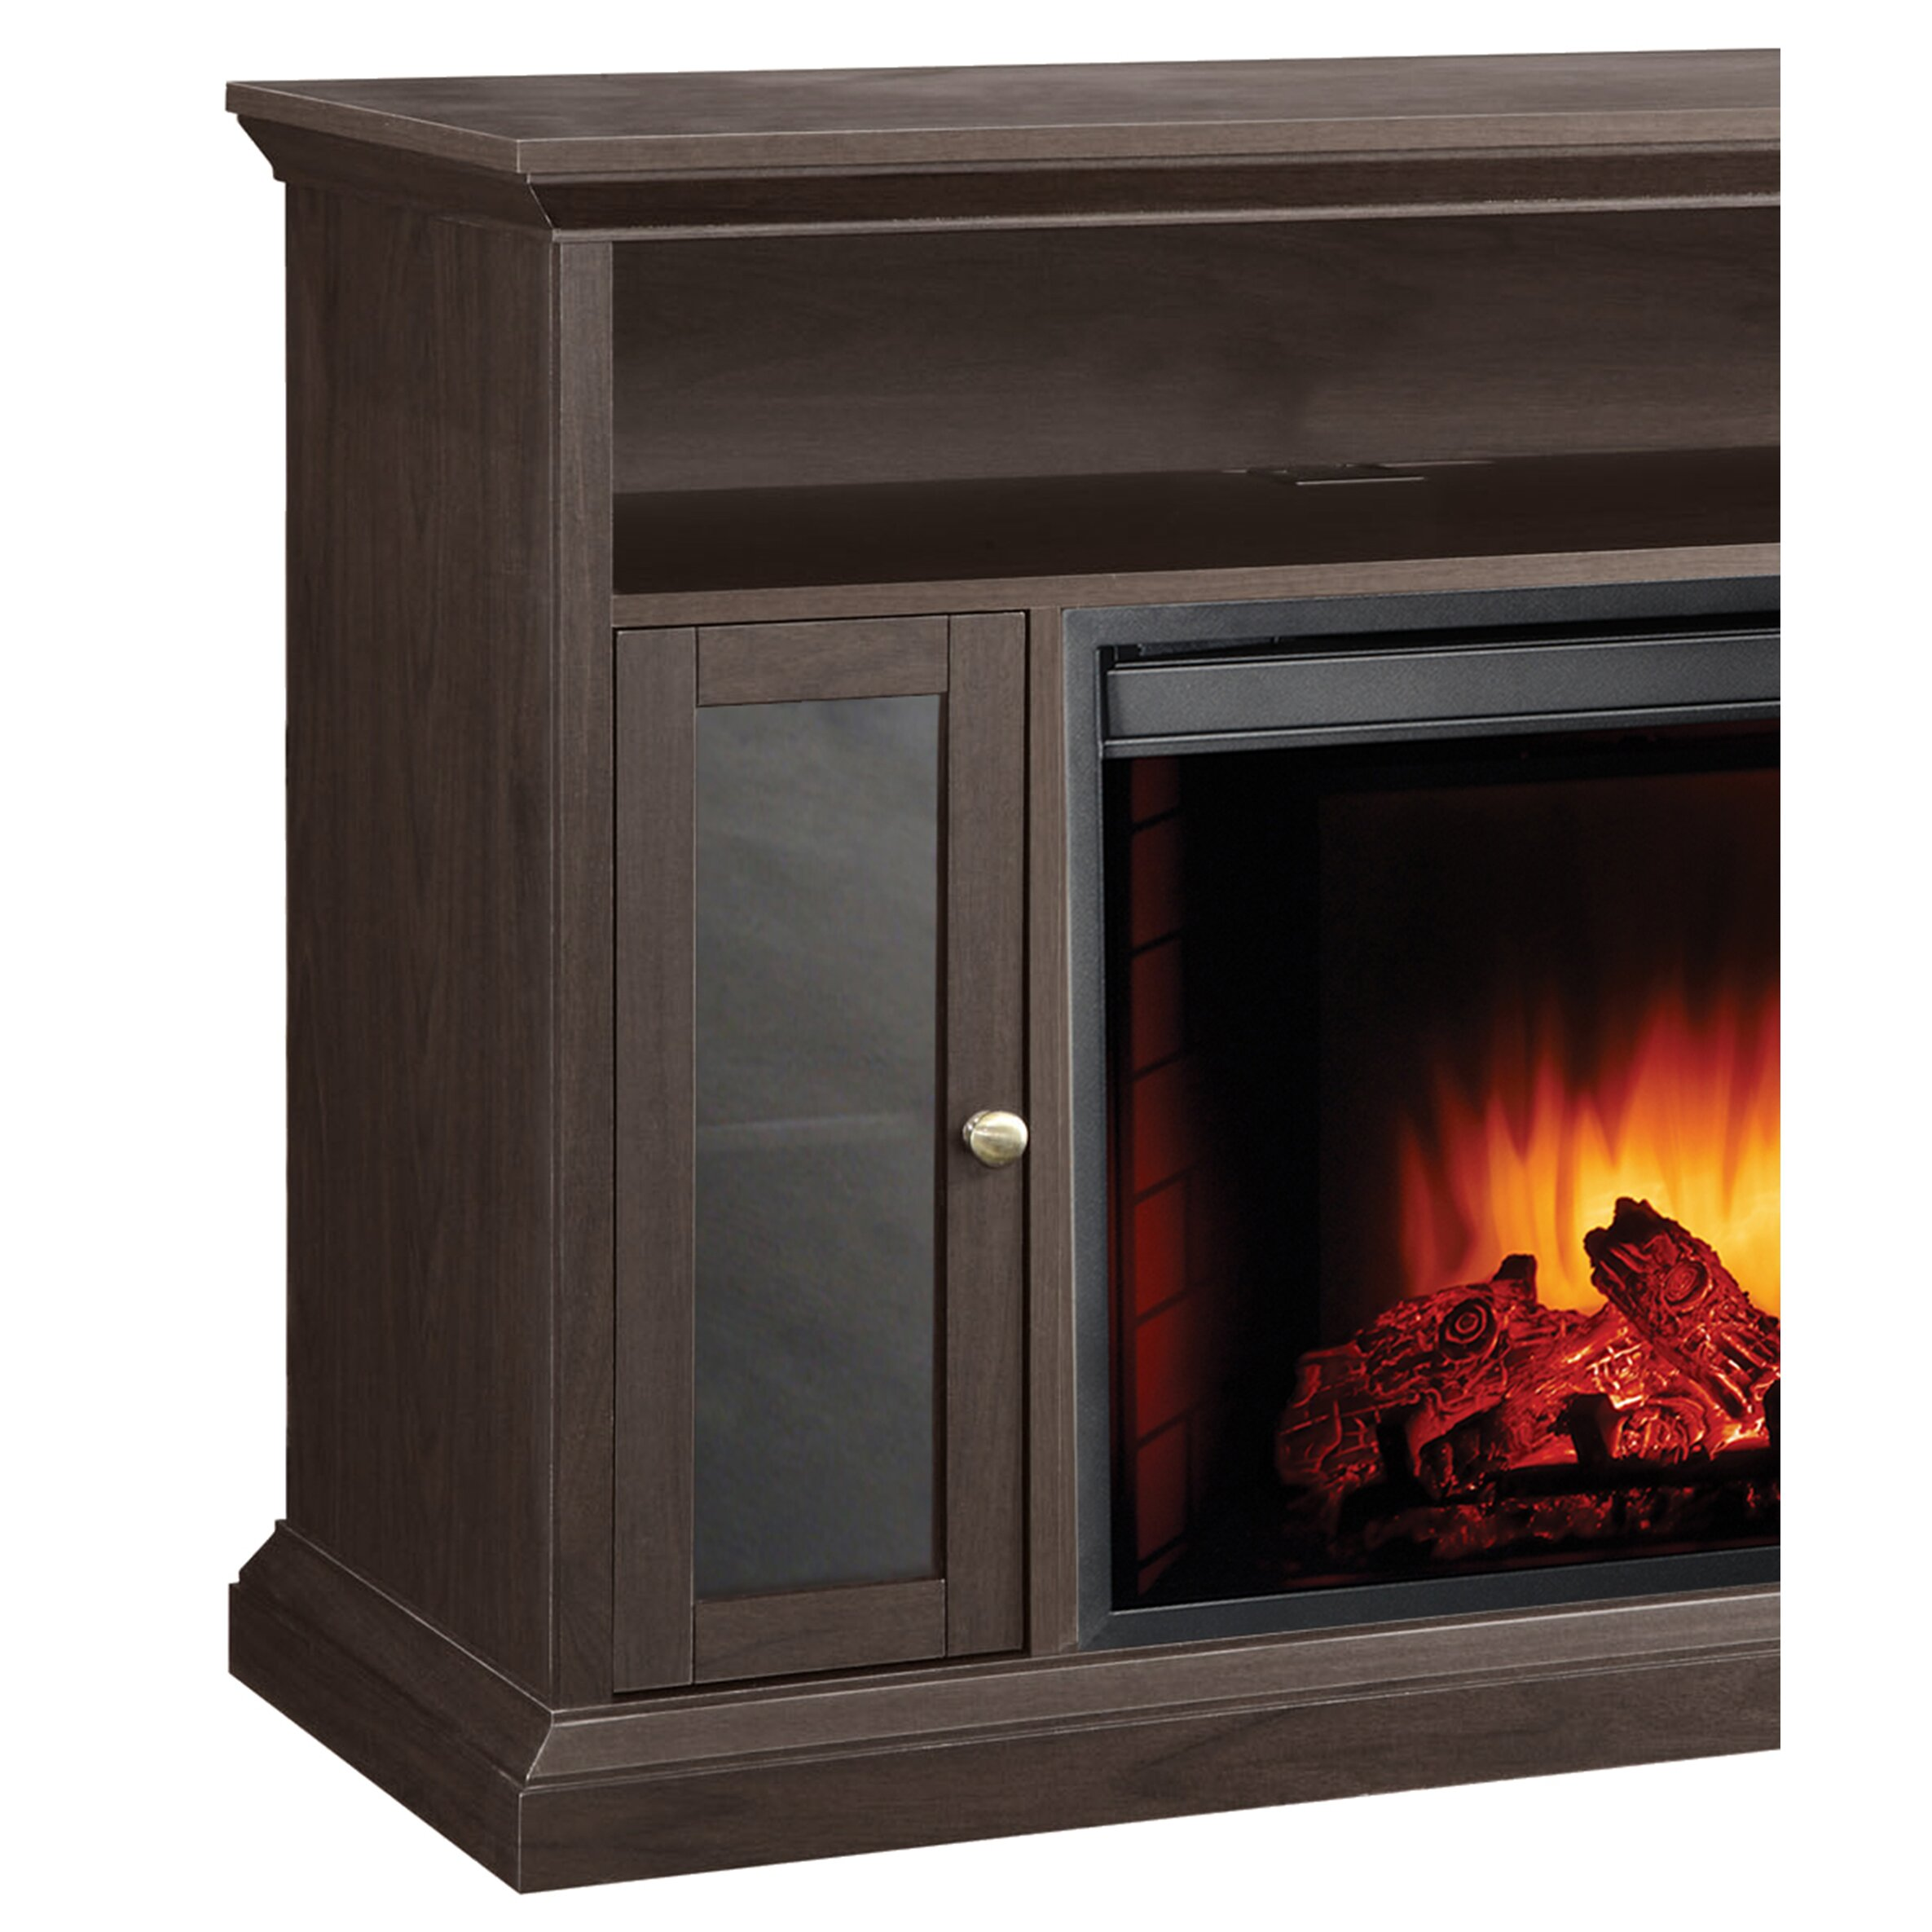 Hearth Cabinet Fireplaces: Pleasant Hearth Riley Media Cabinet Electric Fireplace